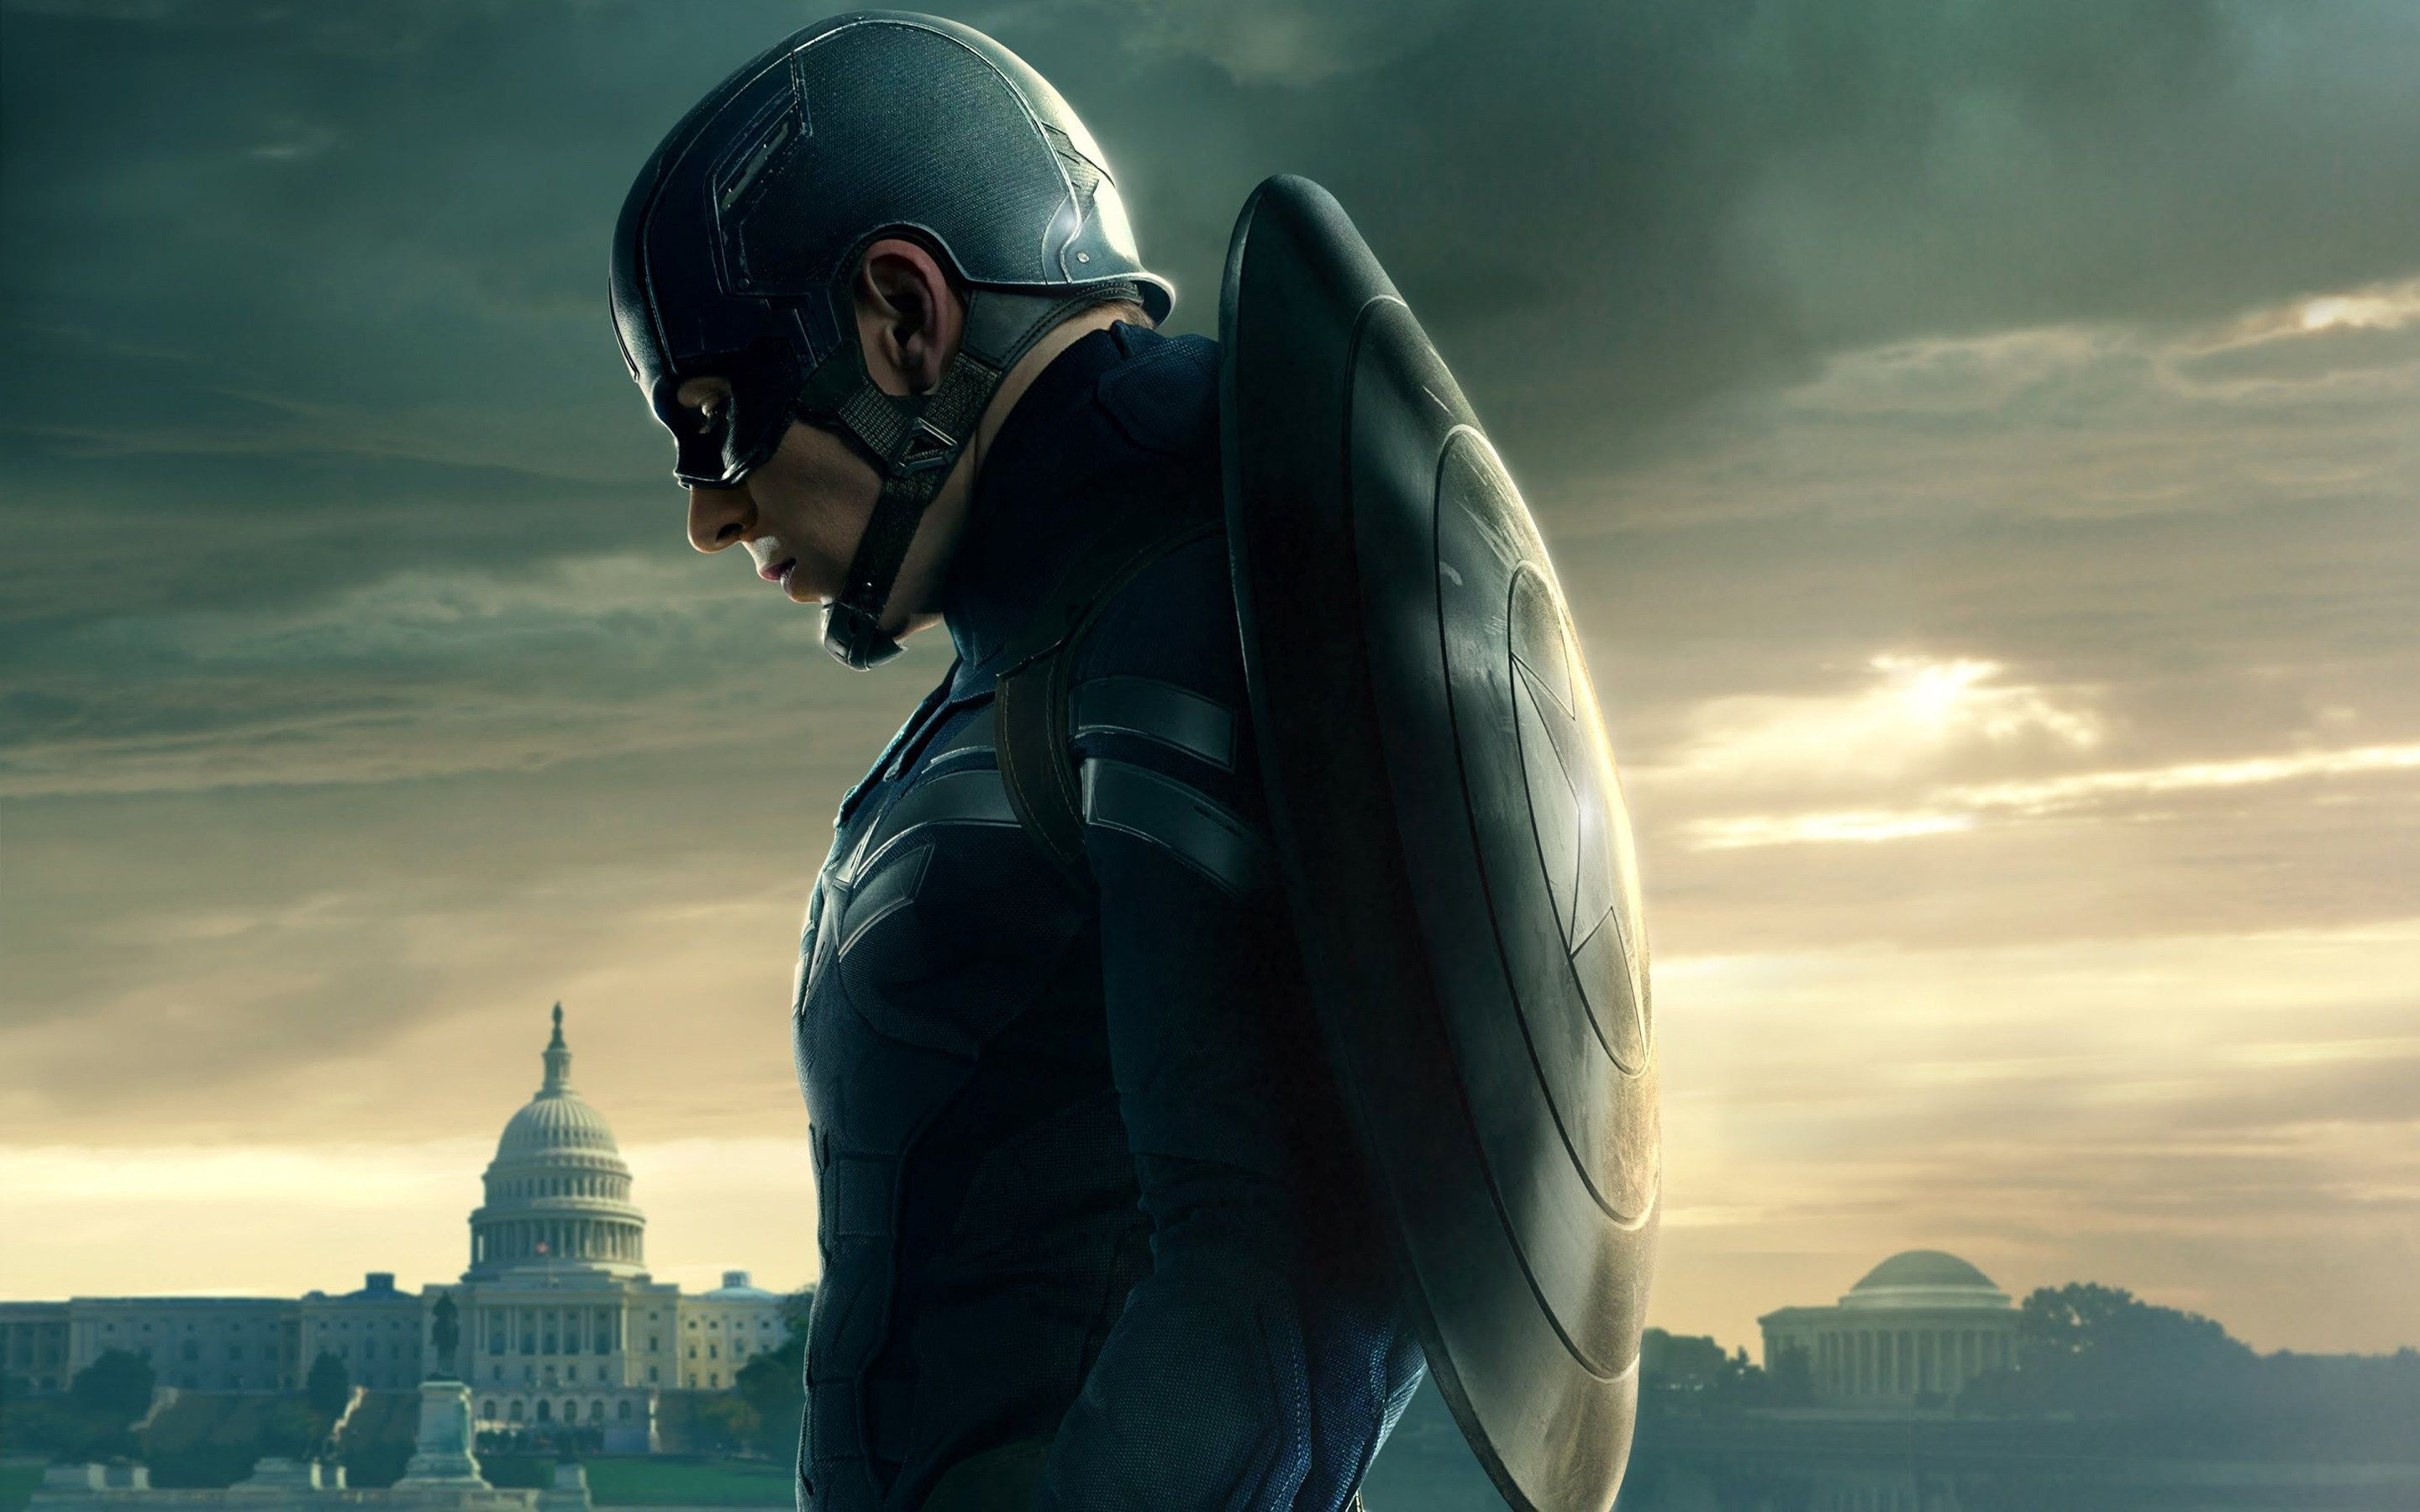 2880x1800 HD Widescreen captain america the winter soldier wallpaper, 472 kB -  Gardner Allford